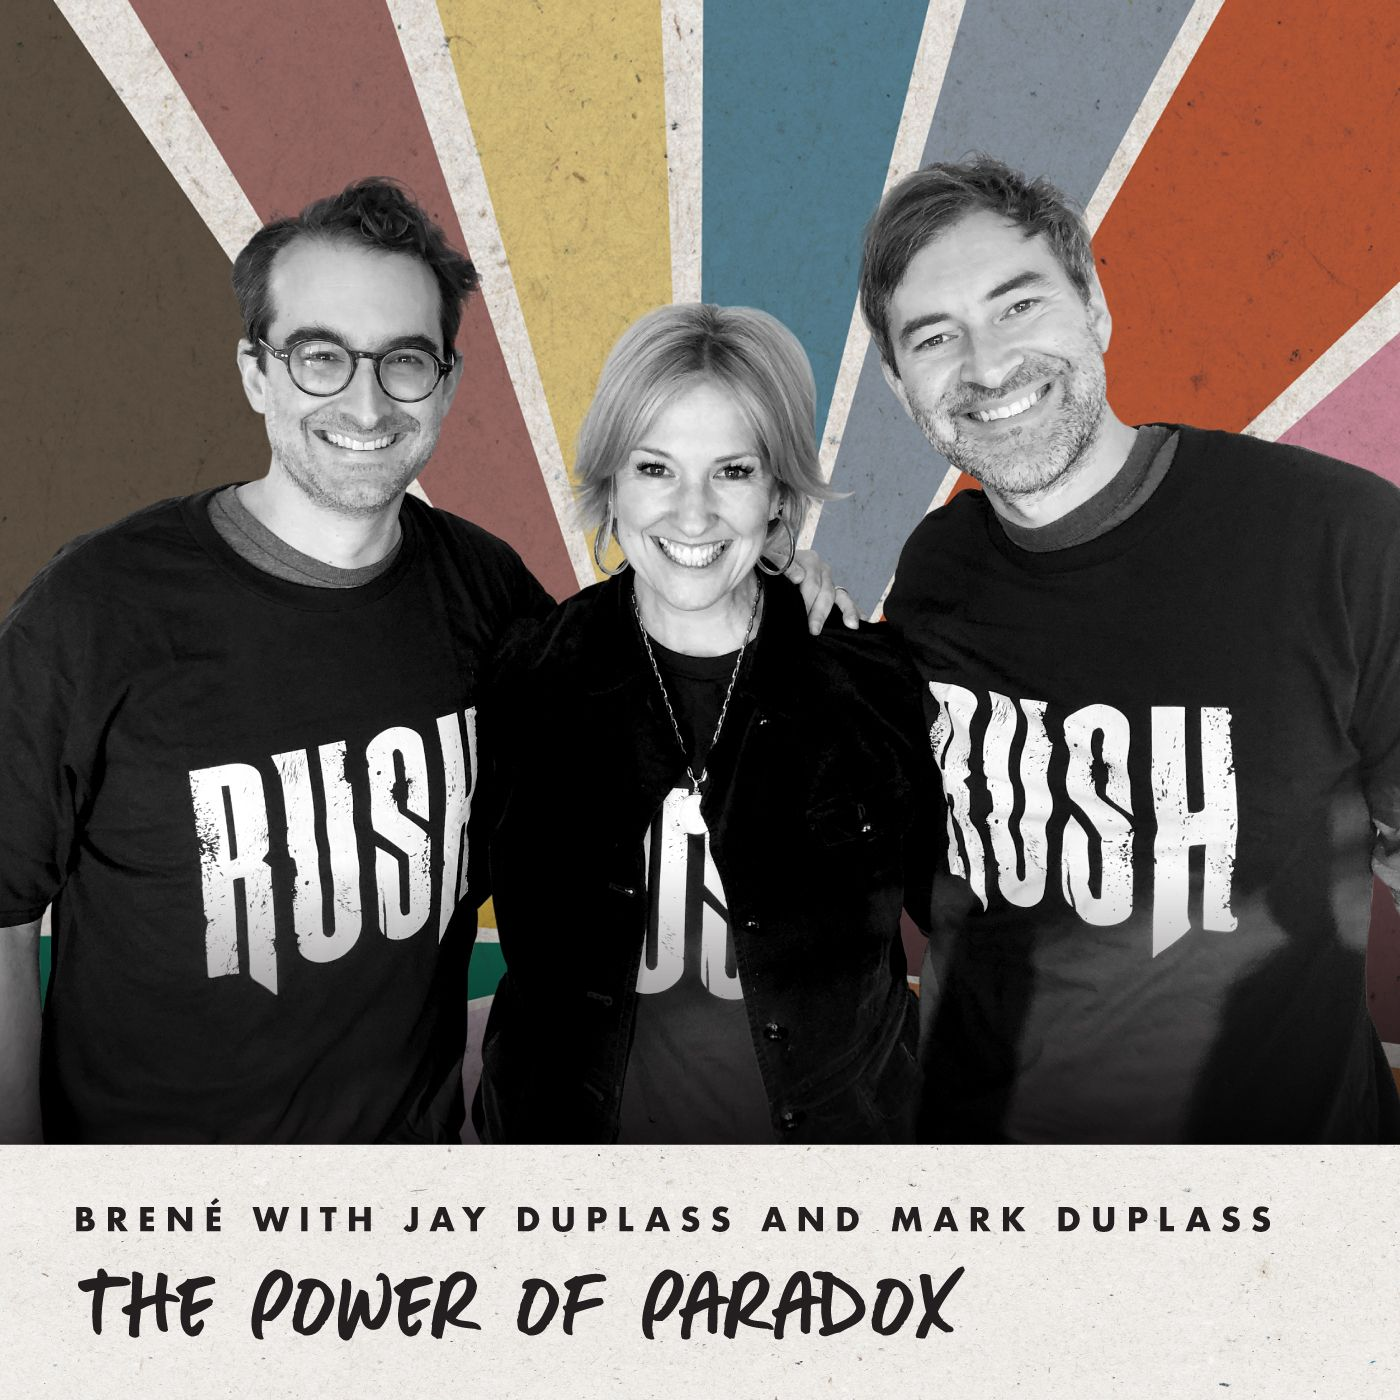 Brené with Jay Duplass and Mark Duplass on The Power of Paradox